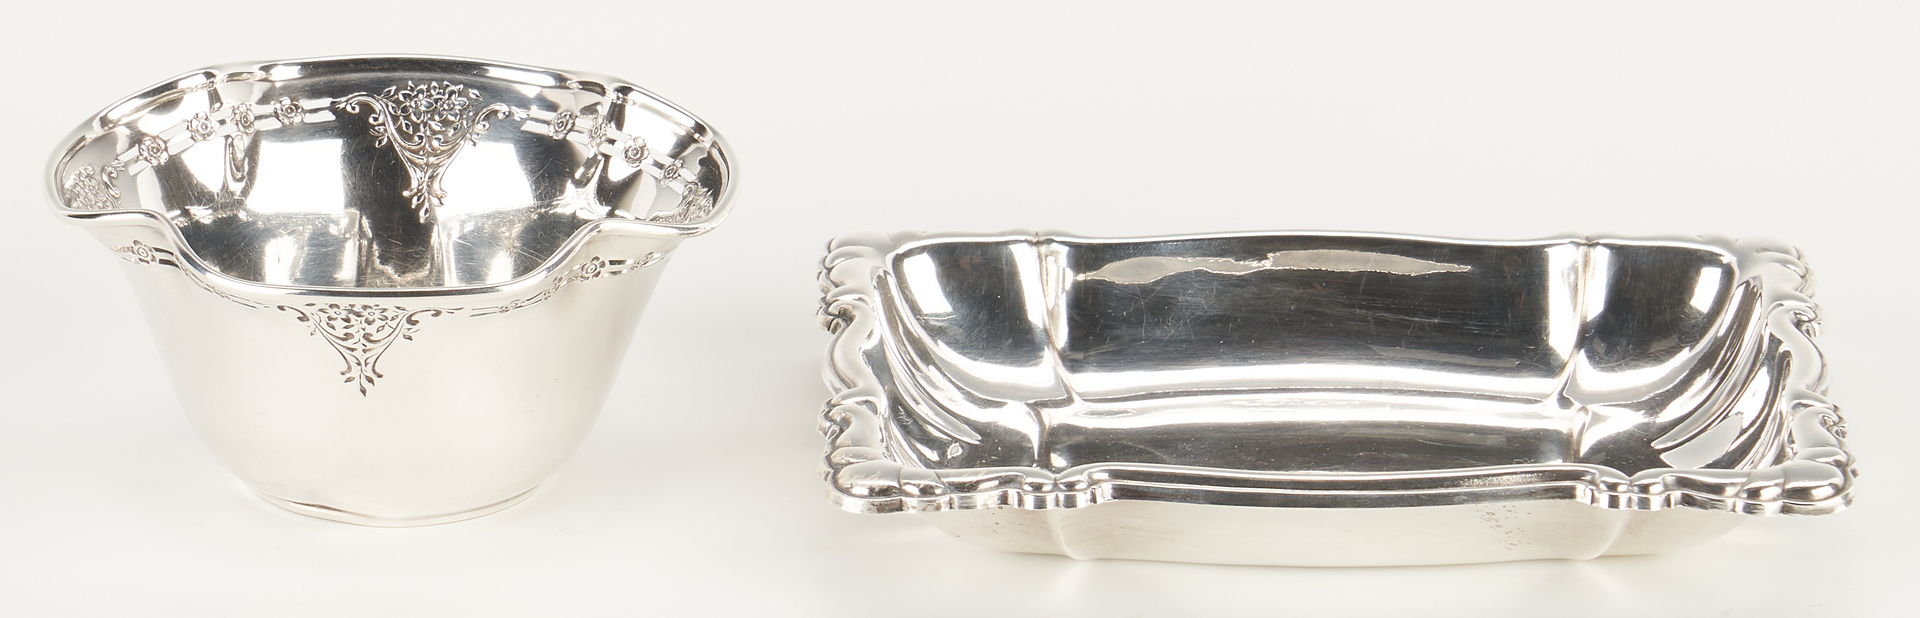 Lot 913: Large Sterling oval large dish, coasters and more, 25 pcs.